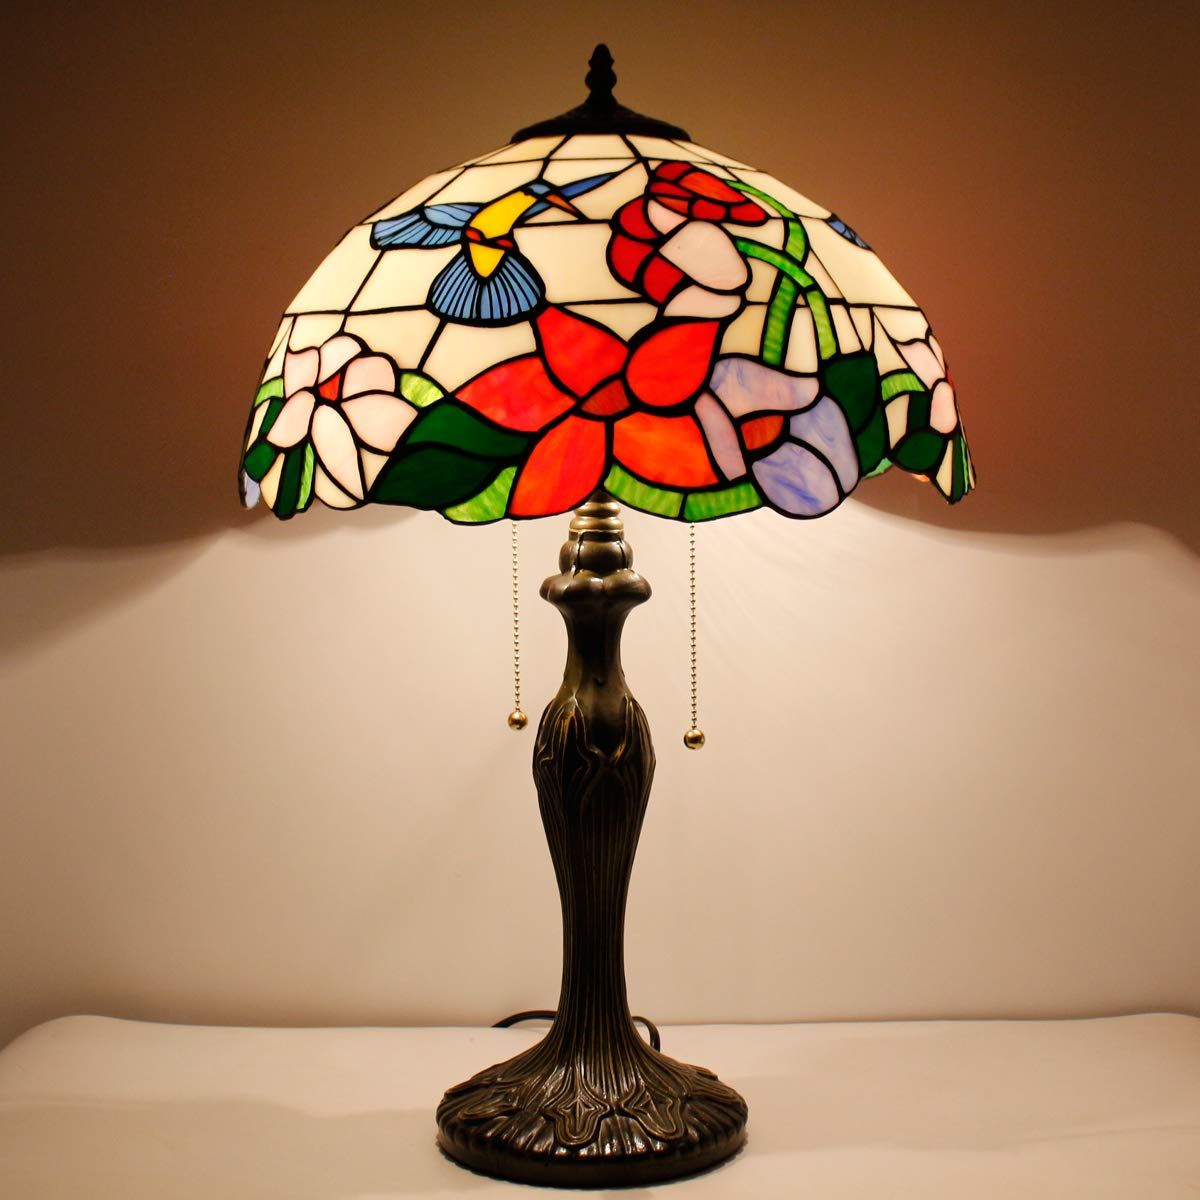 Tiffany Style Table Desk Beside Lamp 24 Inch Tall Hummingbird Design Stained Glass Lamps Shade 2 Light Antique Zinc Base for Living Room Bedroom Set W16 inch S101 WERFACTORY